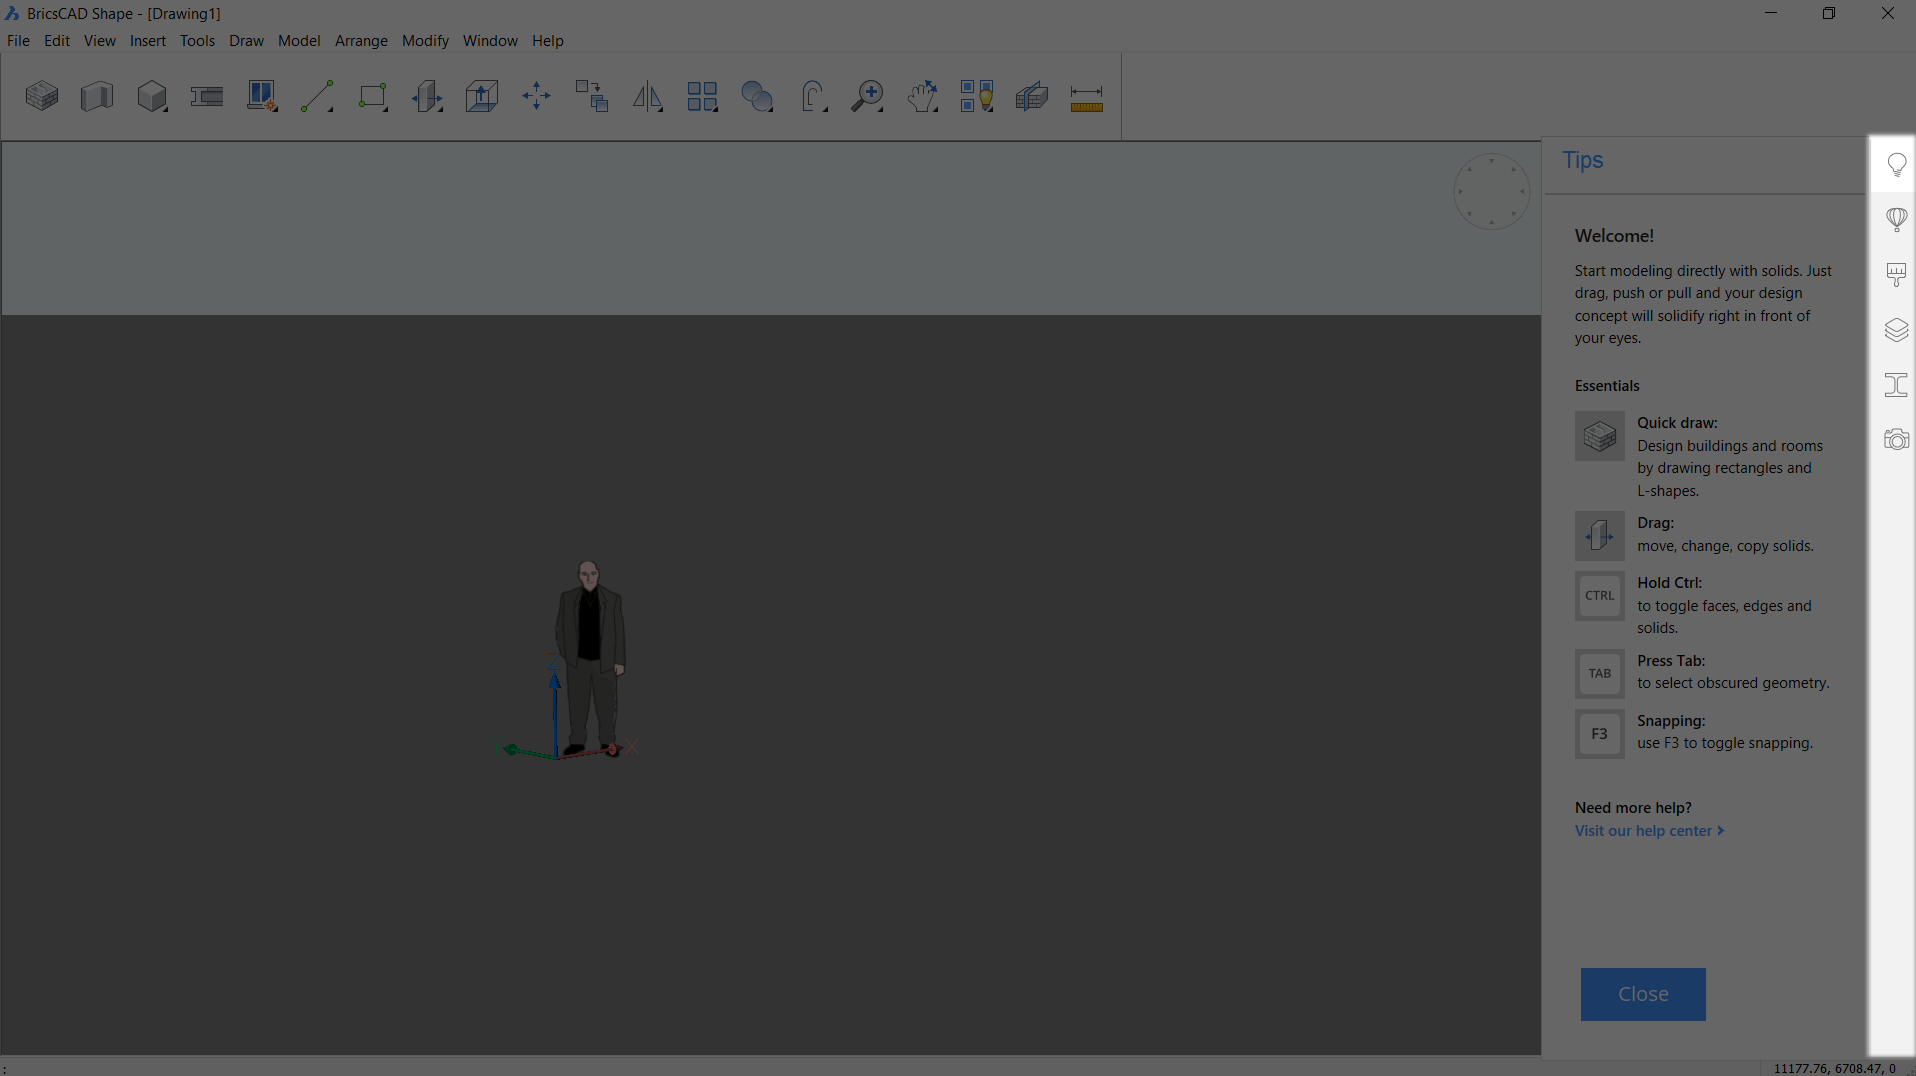 BricsCAD Shape user interface